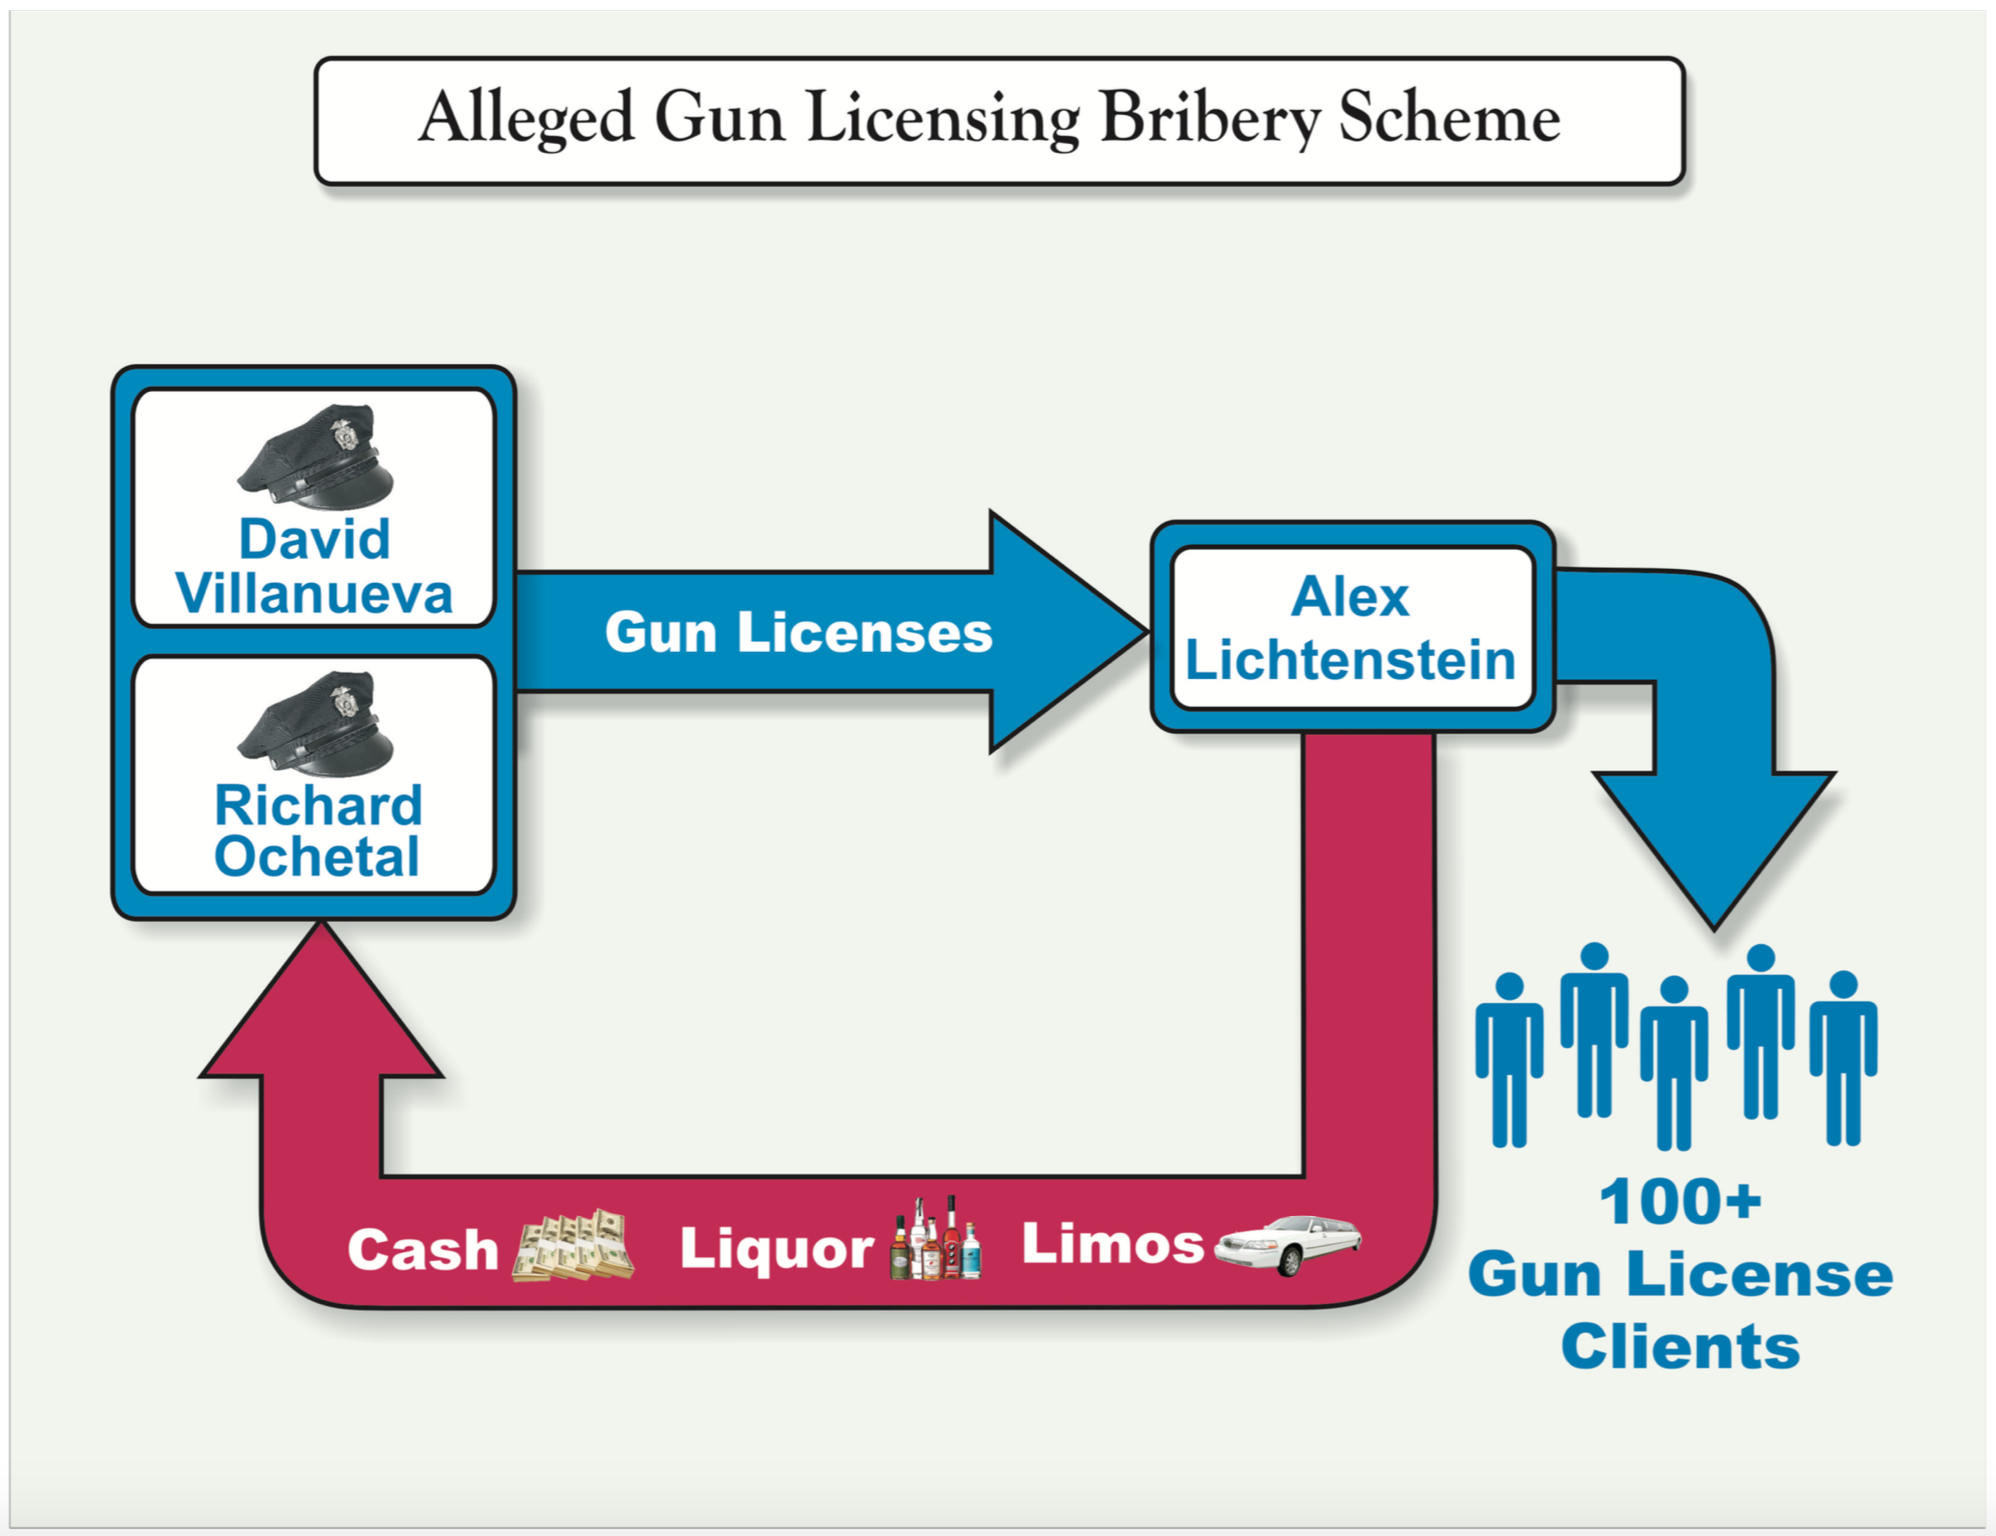 One of the  flow charts  used during Monday's press conference by the office of U.S. Attorney  Preet Bharara  to demonstrate allegations of crimes committed by  NYPD  officers in the License Bureau in a scheme allegedly involving the expedited processing of gun permits requested by  Alex (Shaya) Lichtenstein . Source : U.S. Attorney's Office for the Southern District of New York